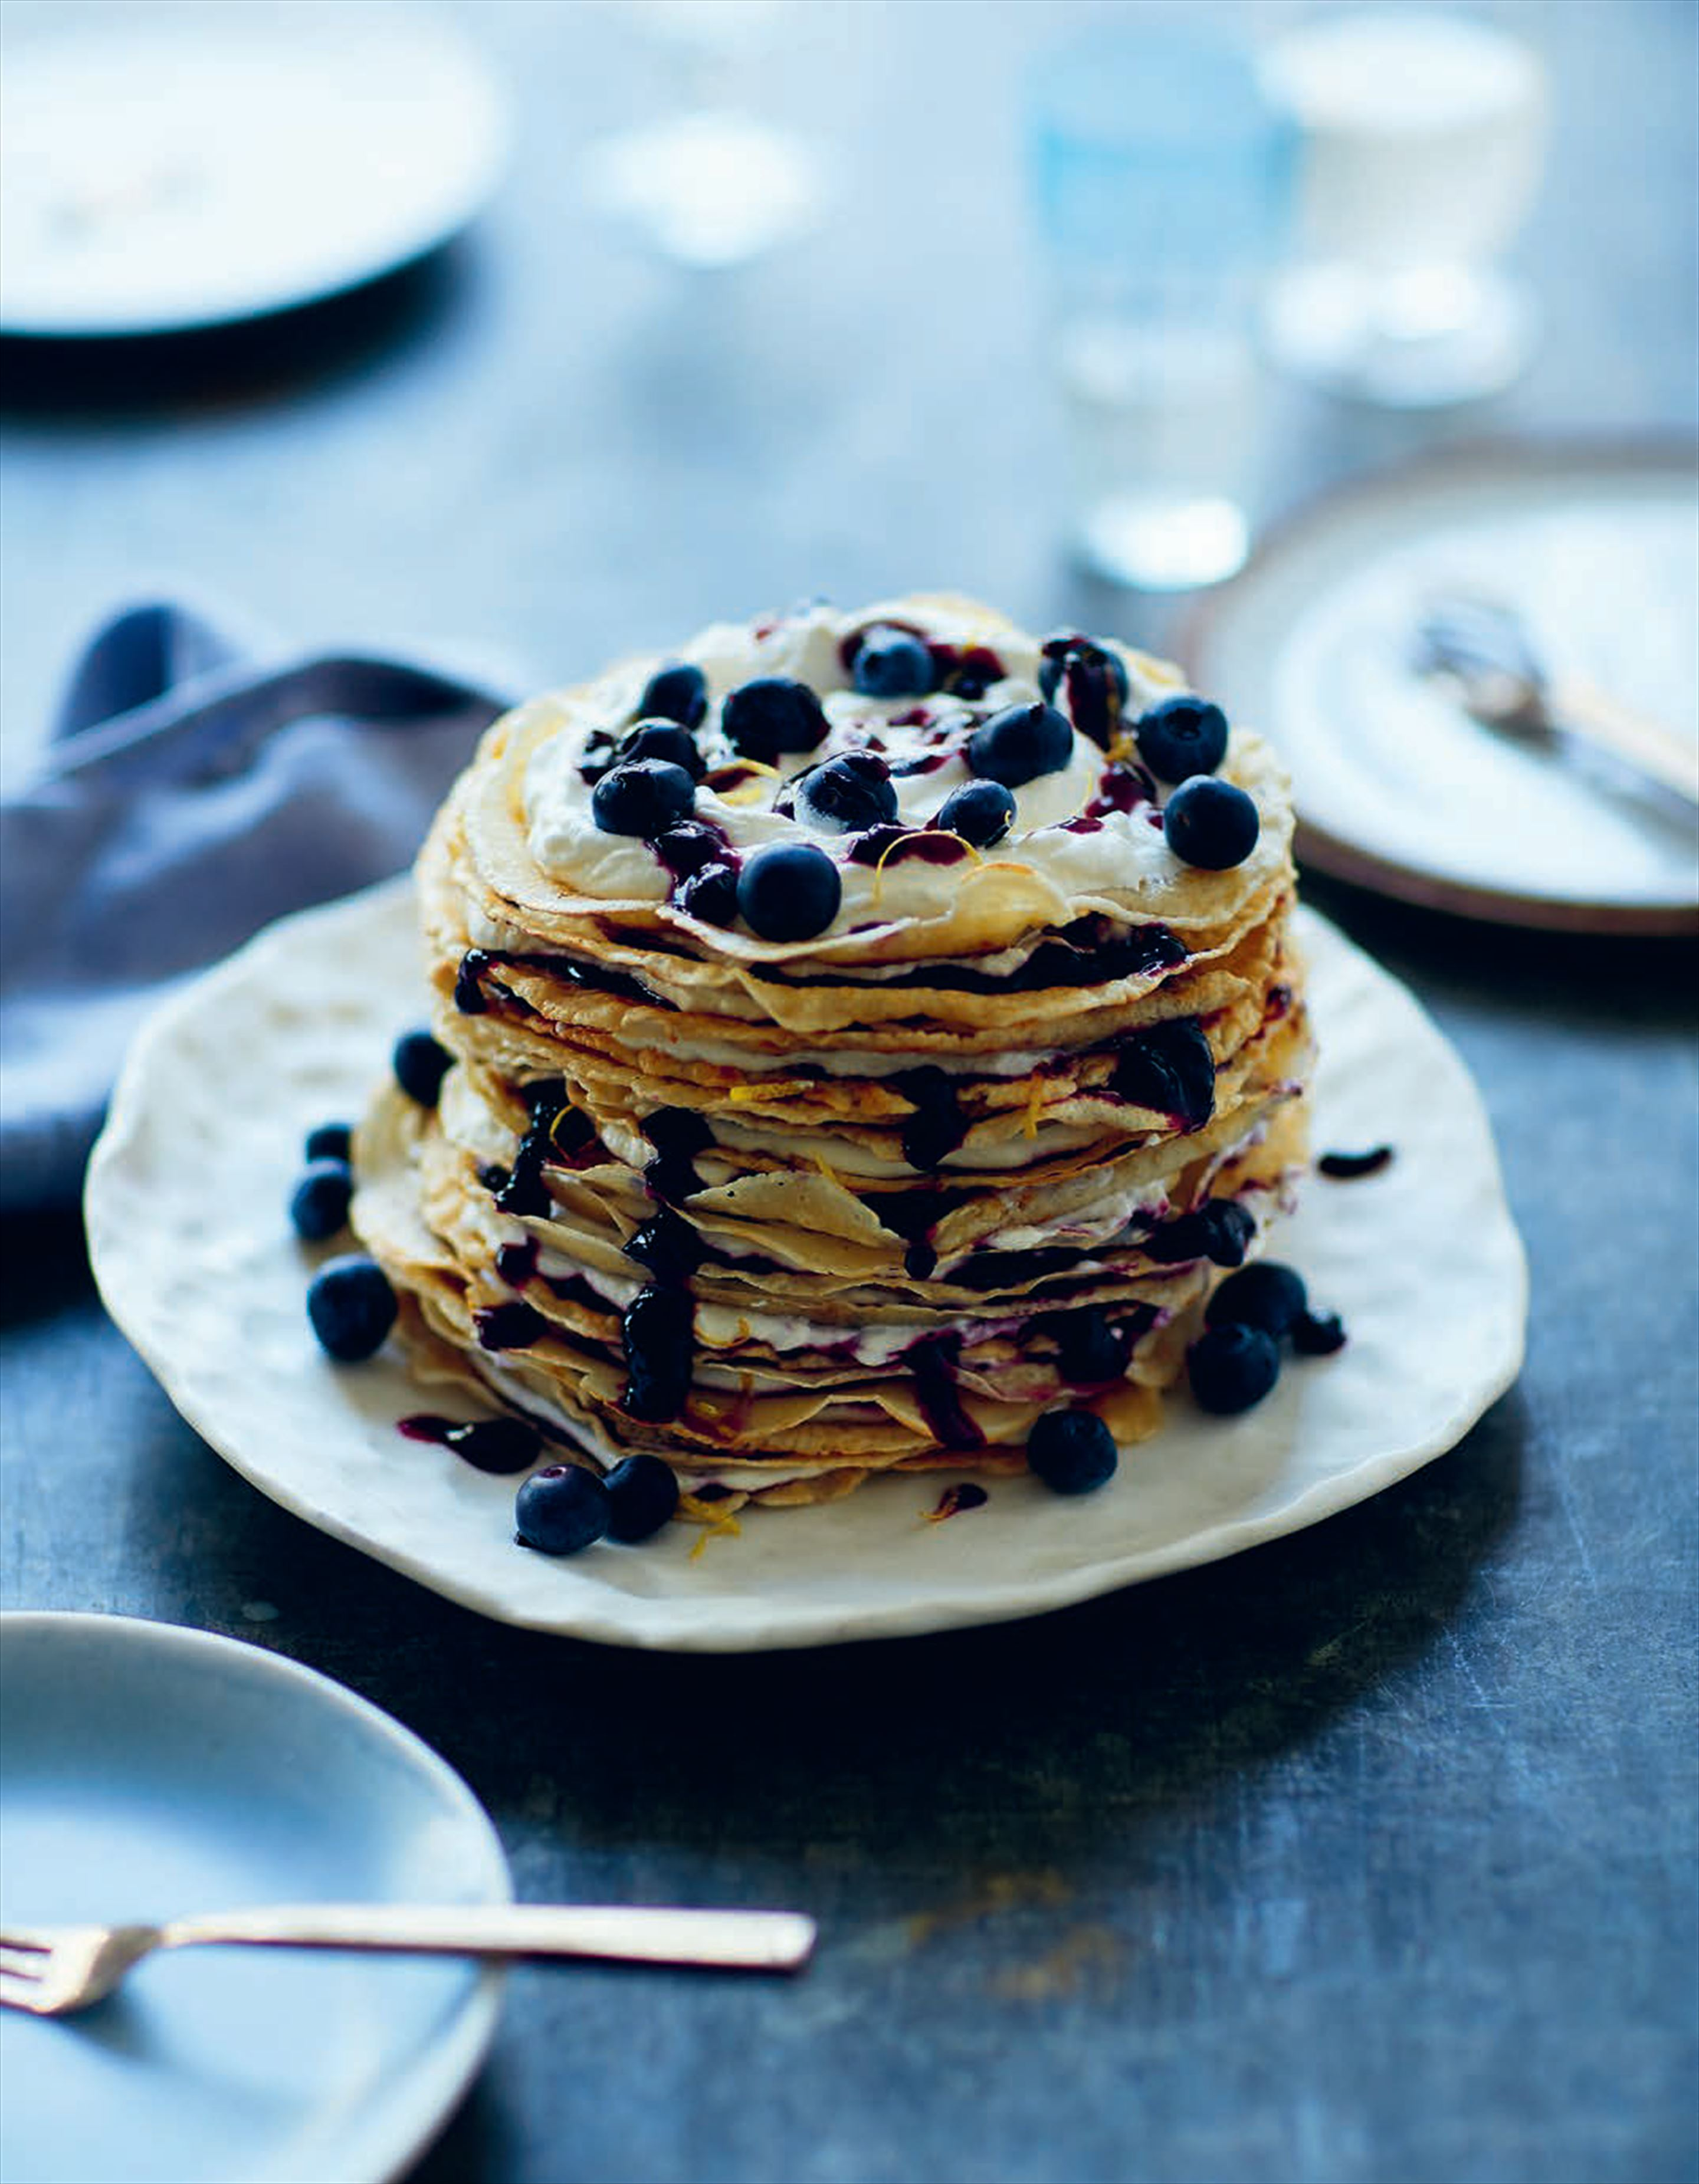 Celebration pancake cake layered with cream & blueberry compote